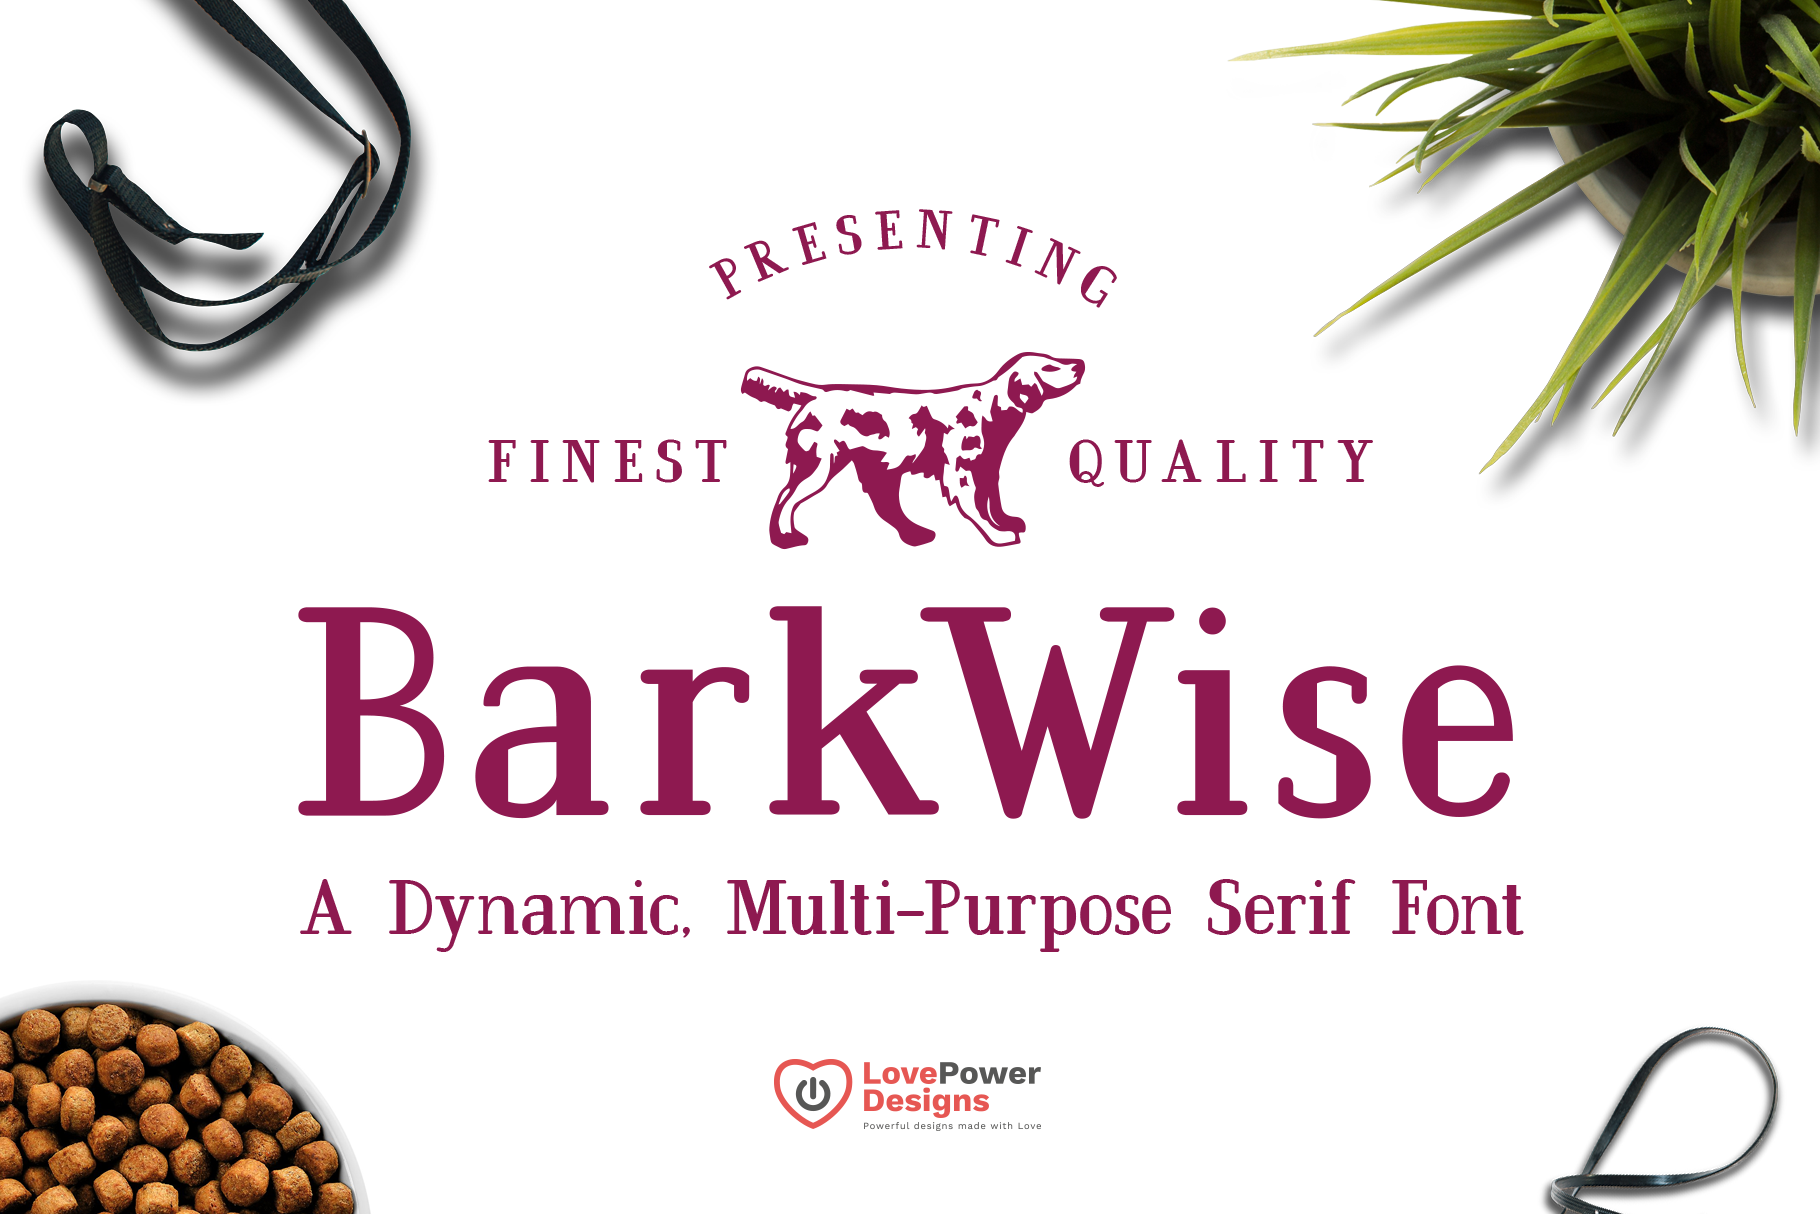 BarkWise - Multi-Purpose Serif Font example image 1